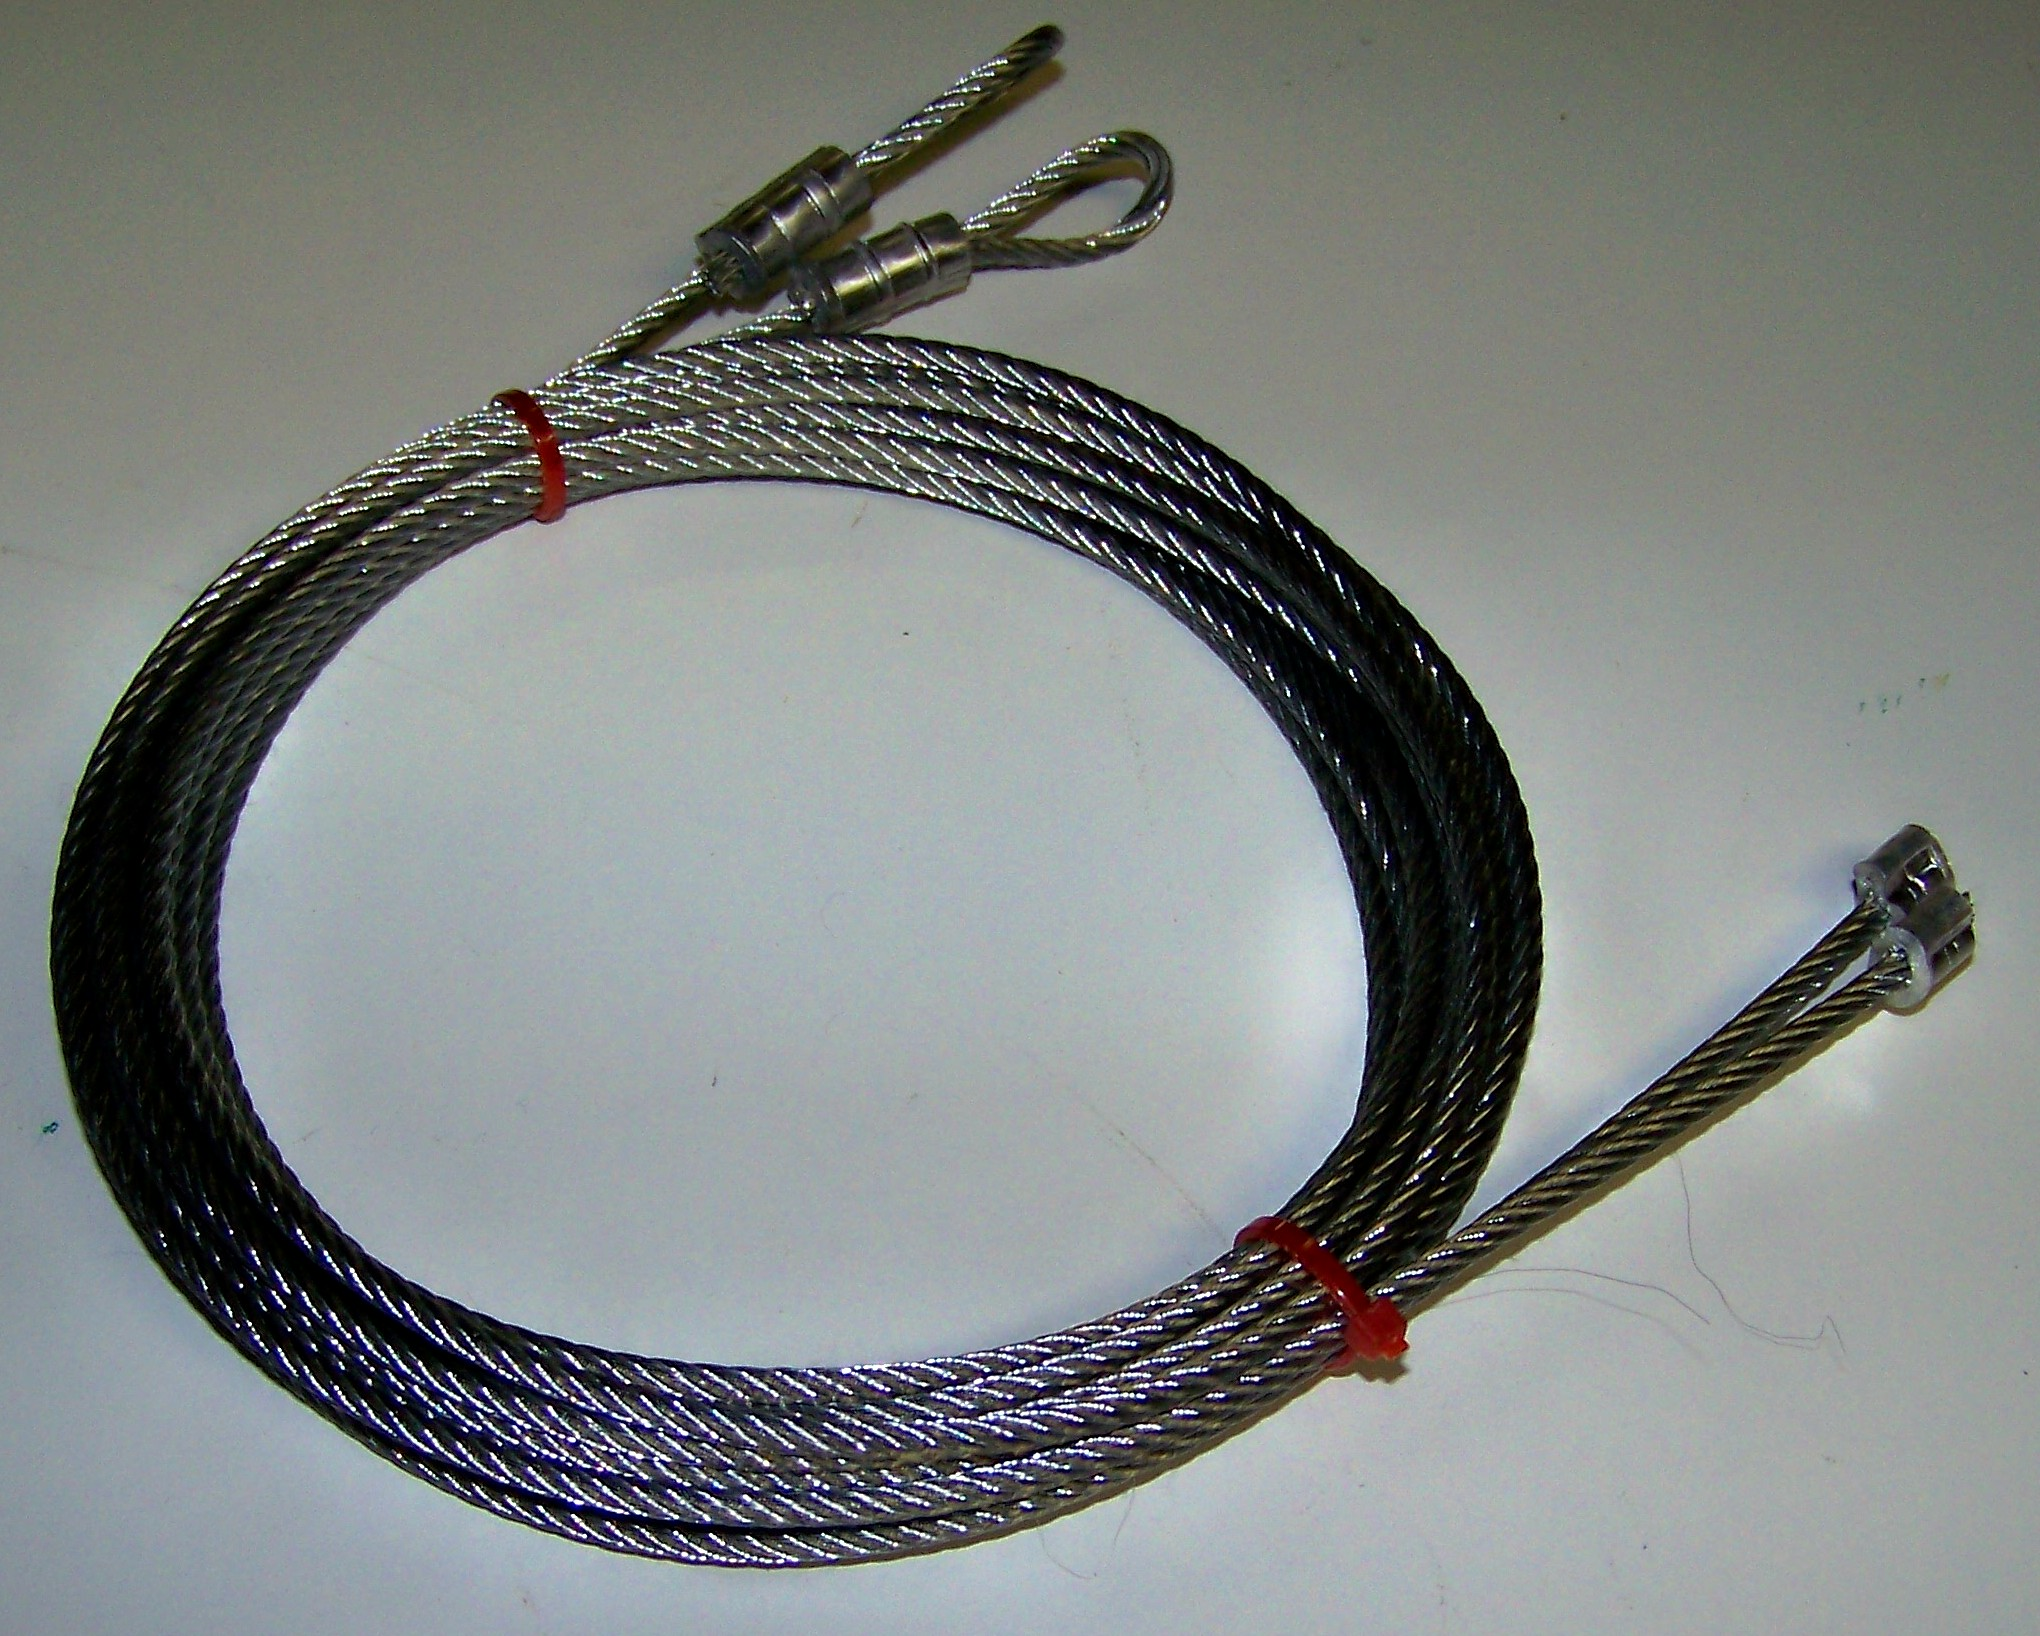 cables what com size broken cable photo how finallyfastblog garage doors full dogarage of on the a fix x door to broke